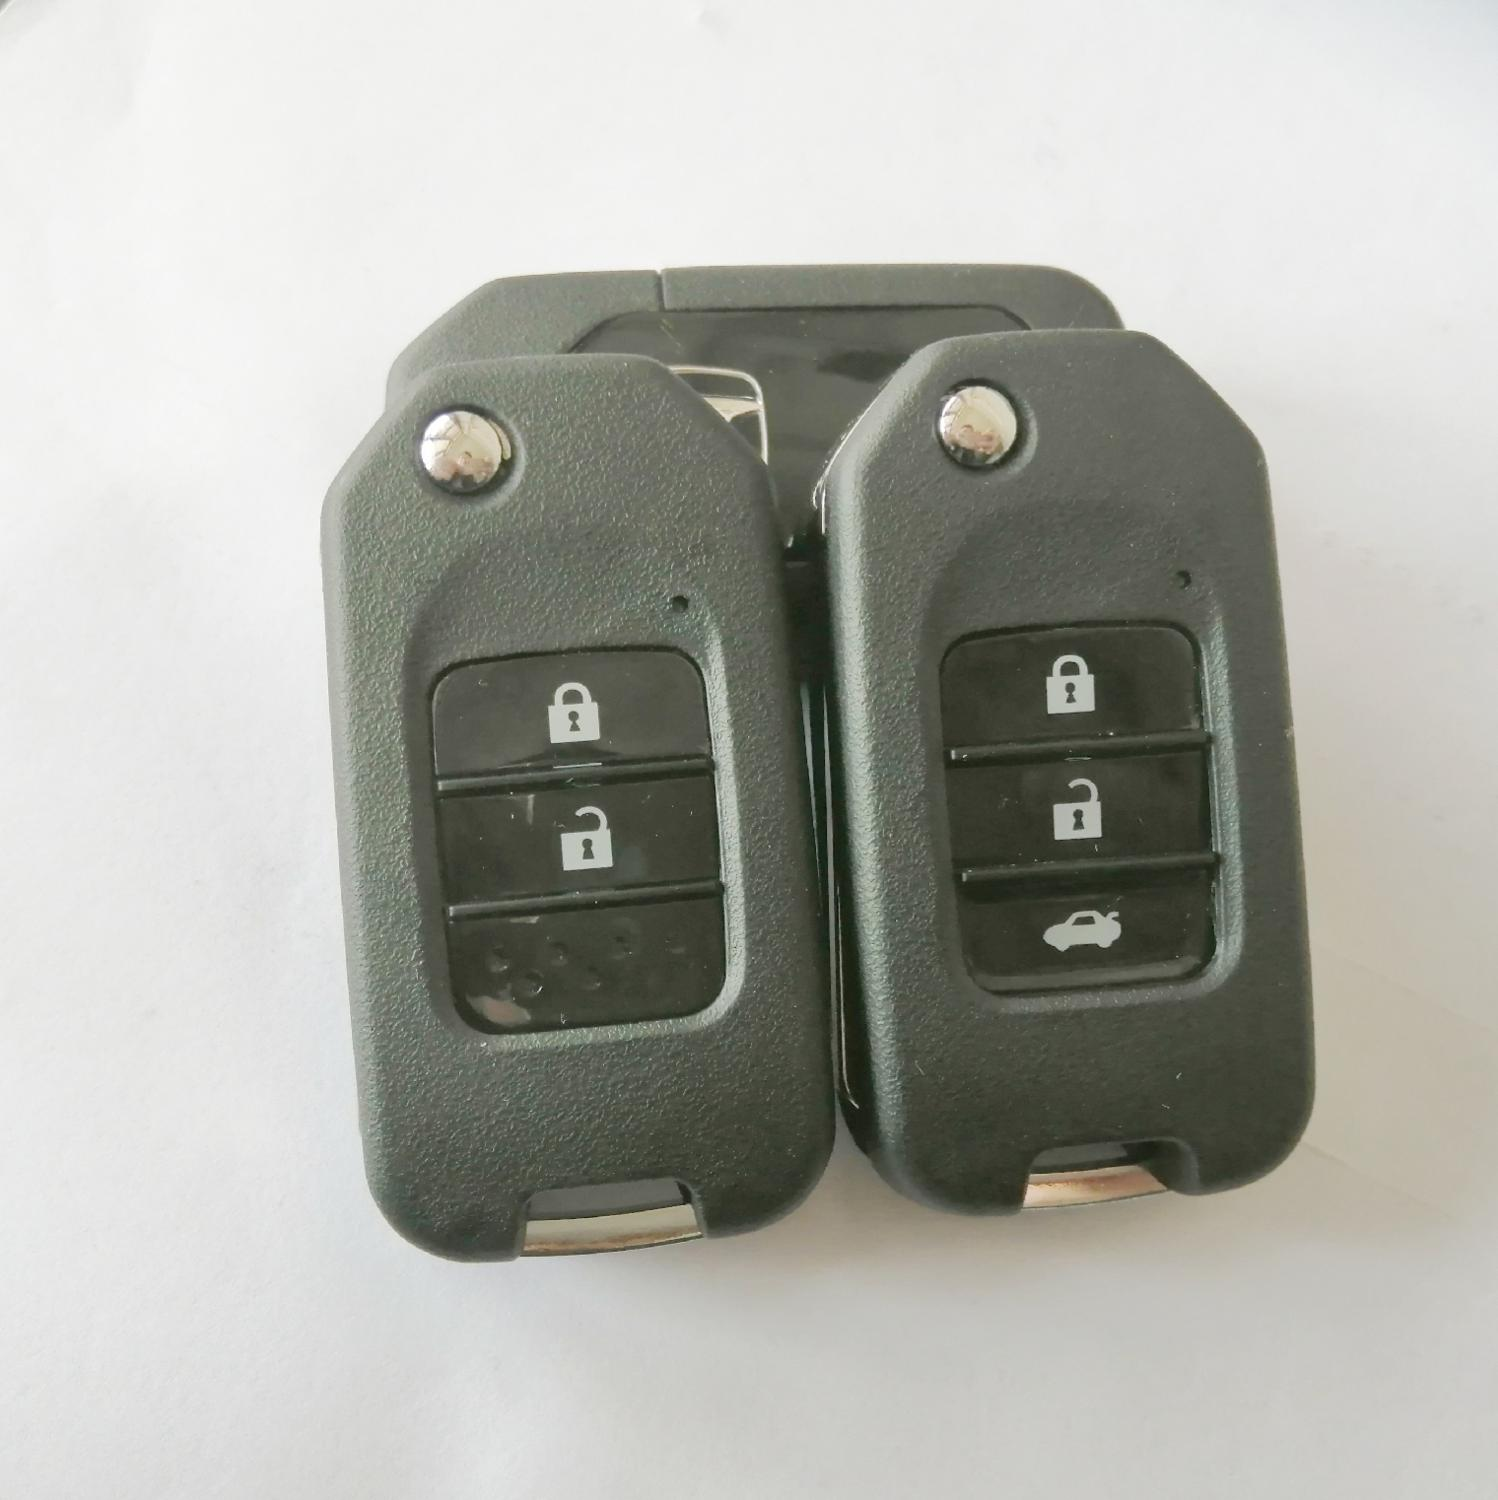 With Logo Folding Car Key <font><b>Flip</b></font> Key Shell Stying Cover Case 2/3 Button <font><b>Remote</b></font> Key Cover Smart Key Case For <font><b>Honda</b></font> CRV New <font><b>Accord</b></font> image